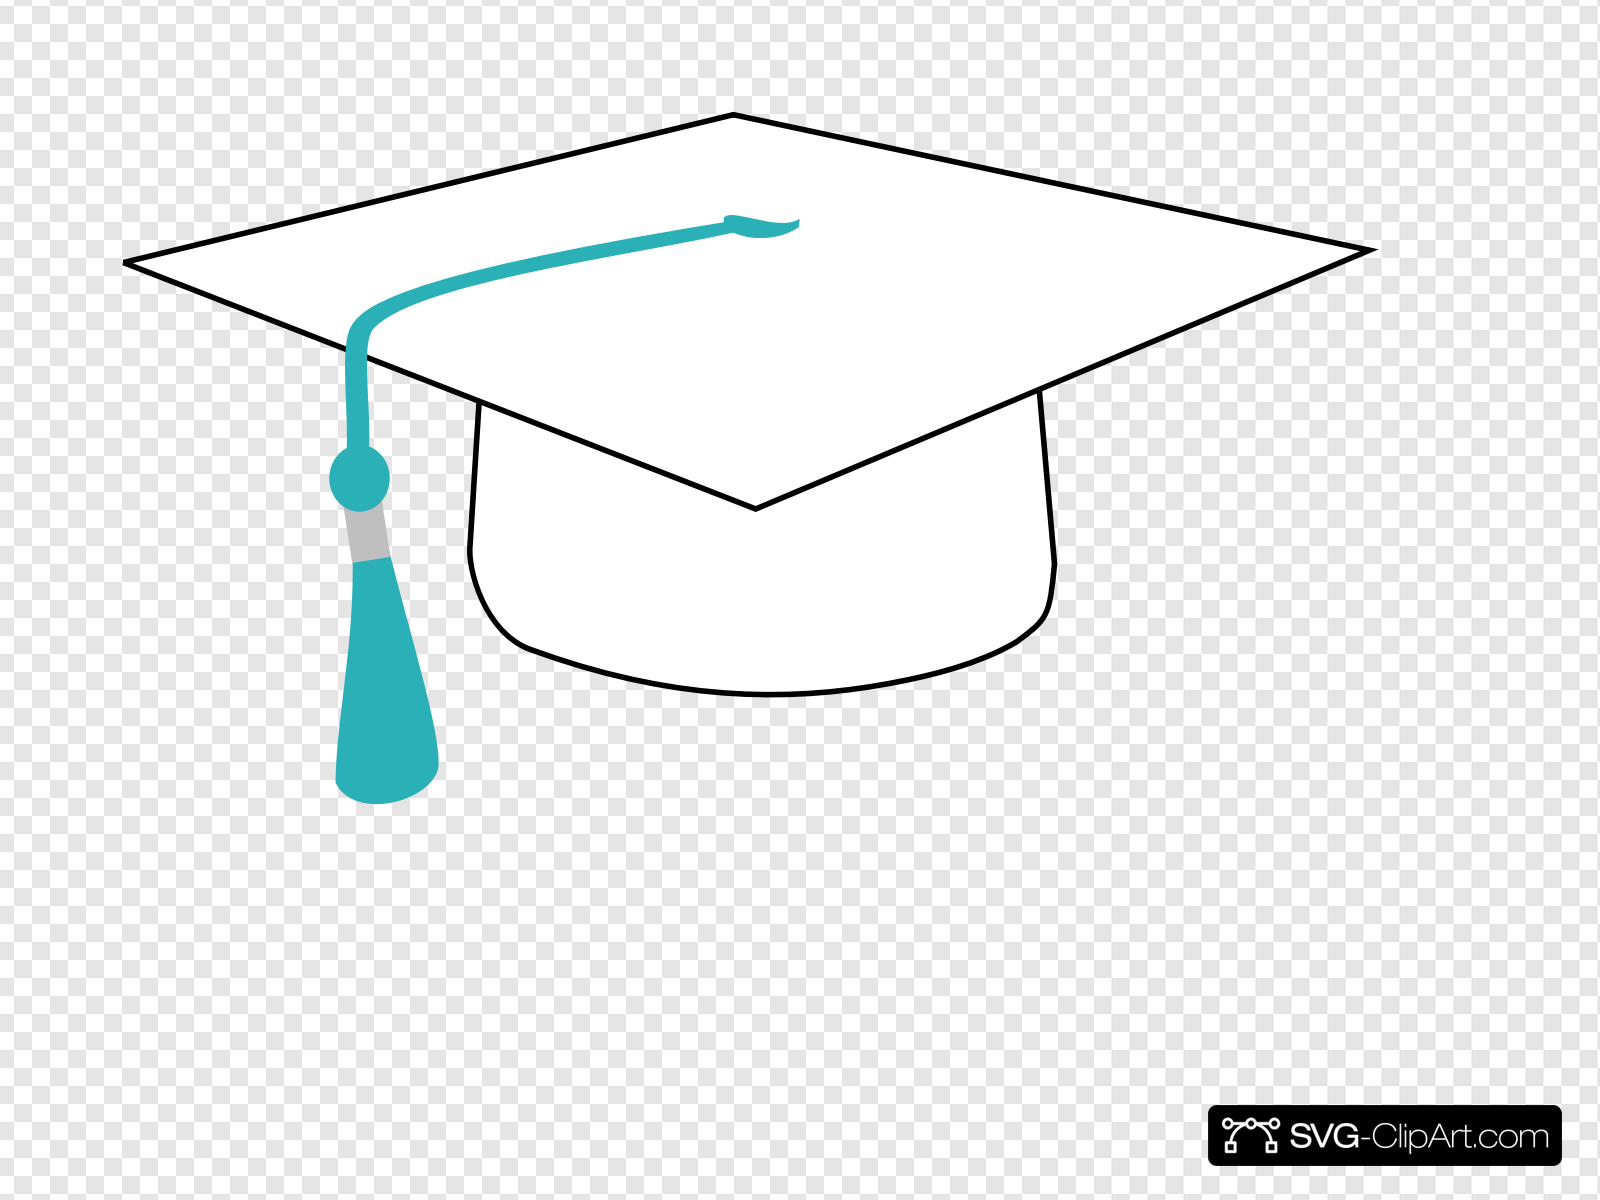 White Graduation Cap With Teal Ribbon Clip art, Icon and SVG.